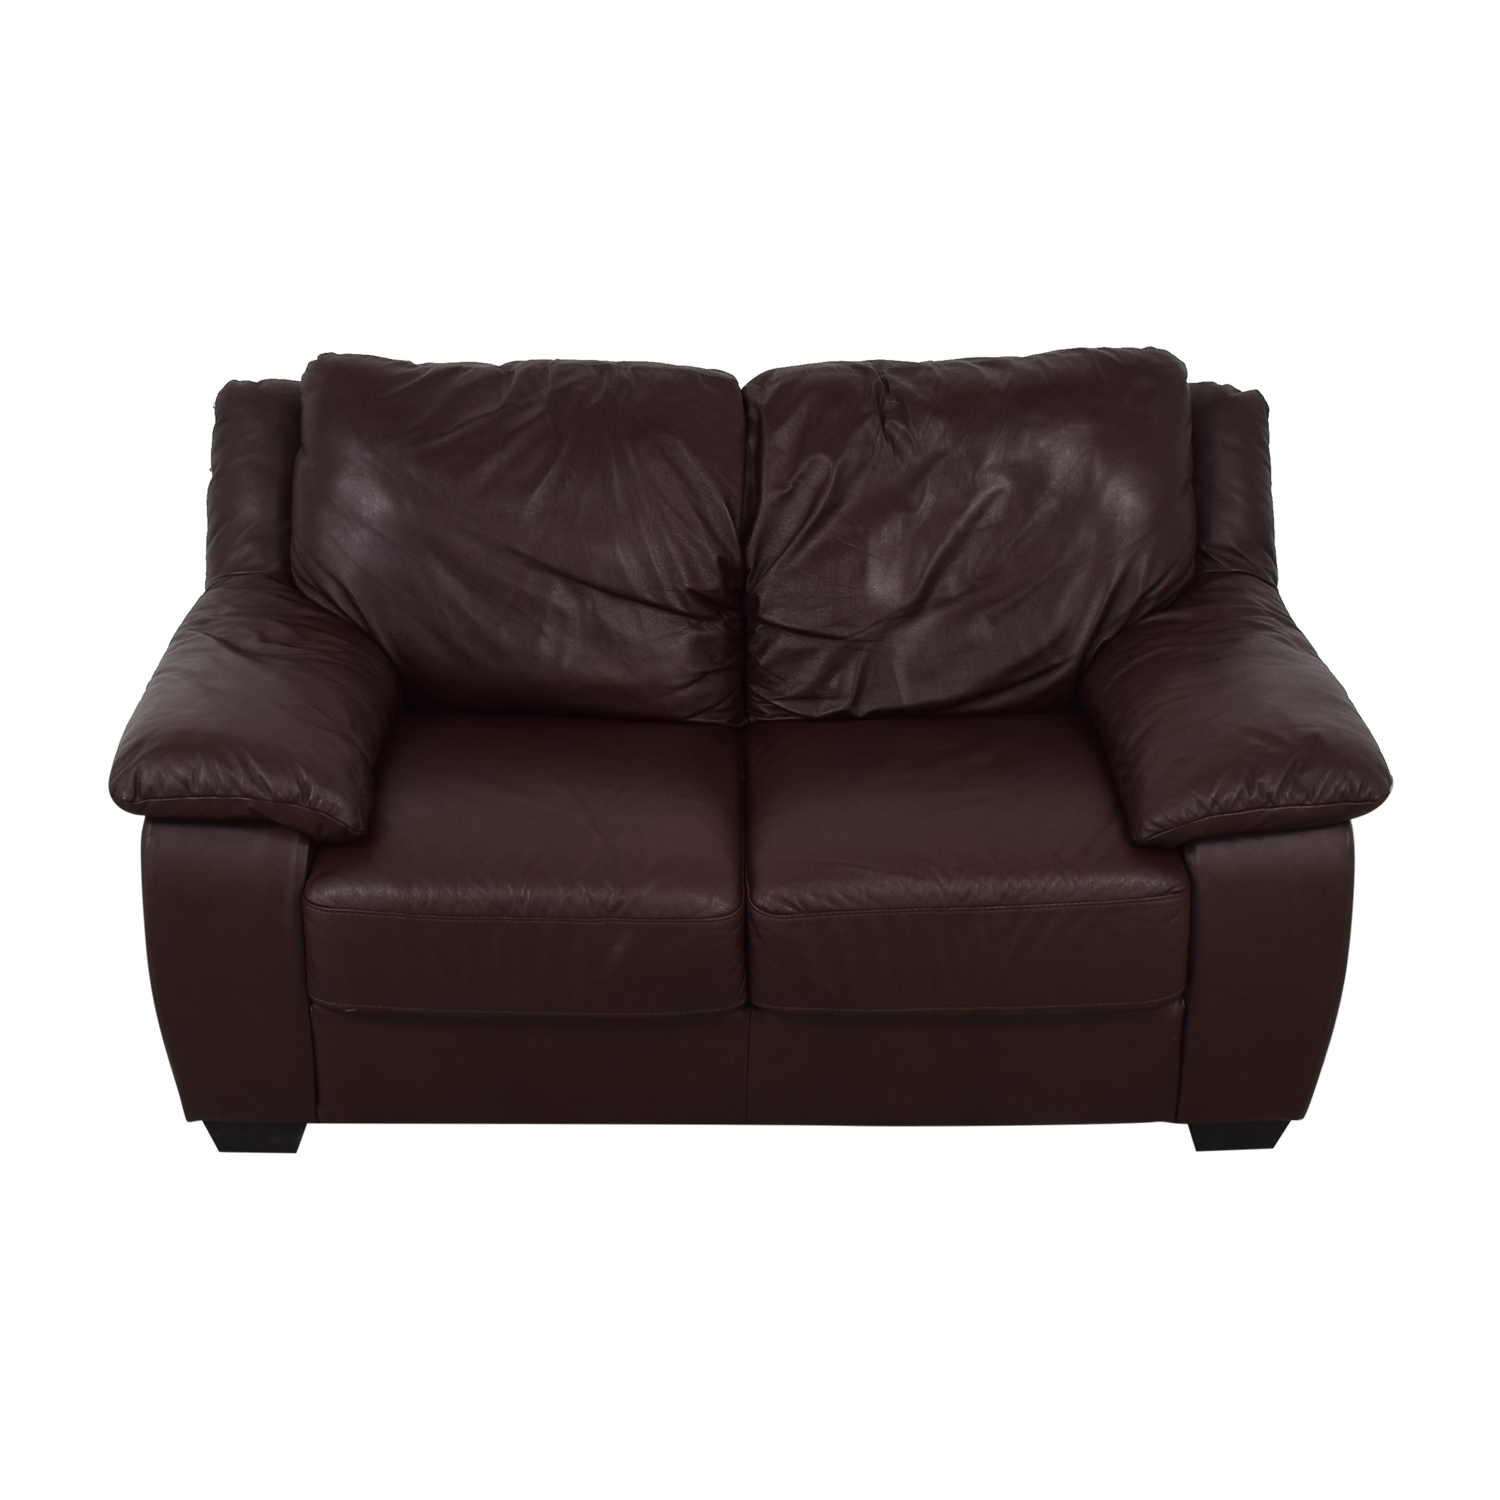 Natuzzi Natuzzi Brown Two-Cushion Loveseat light brown